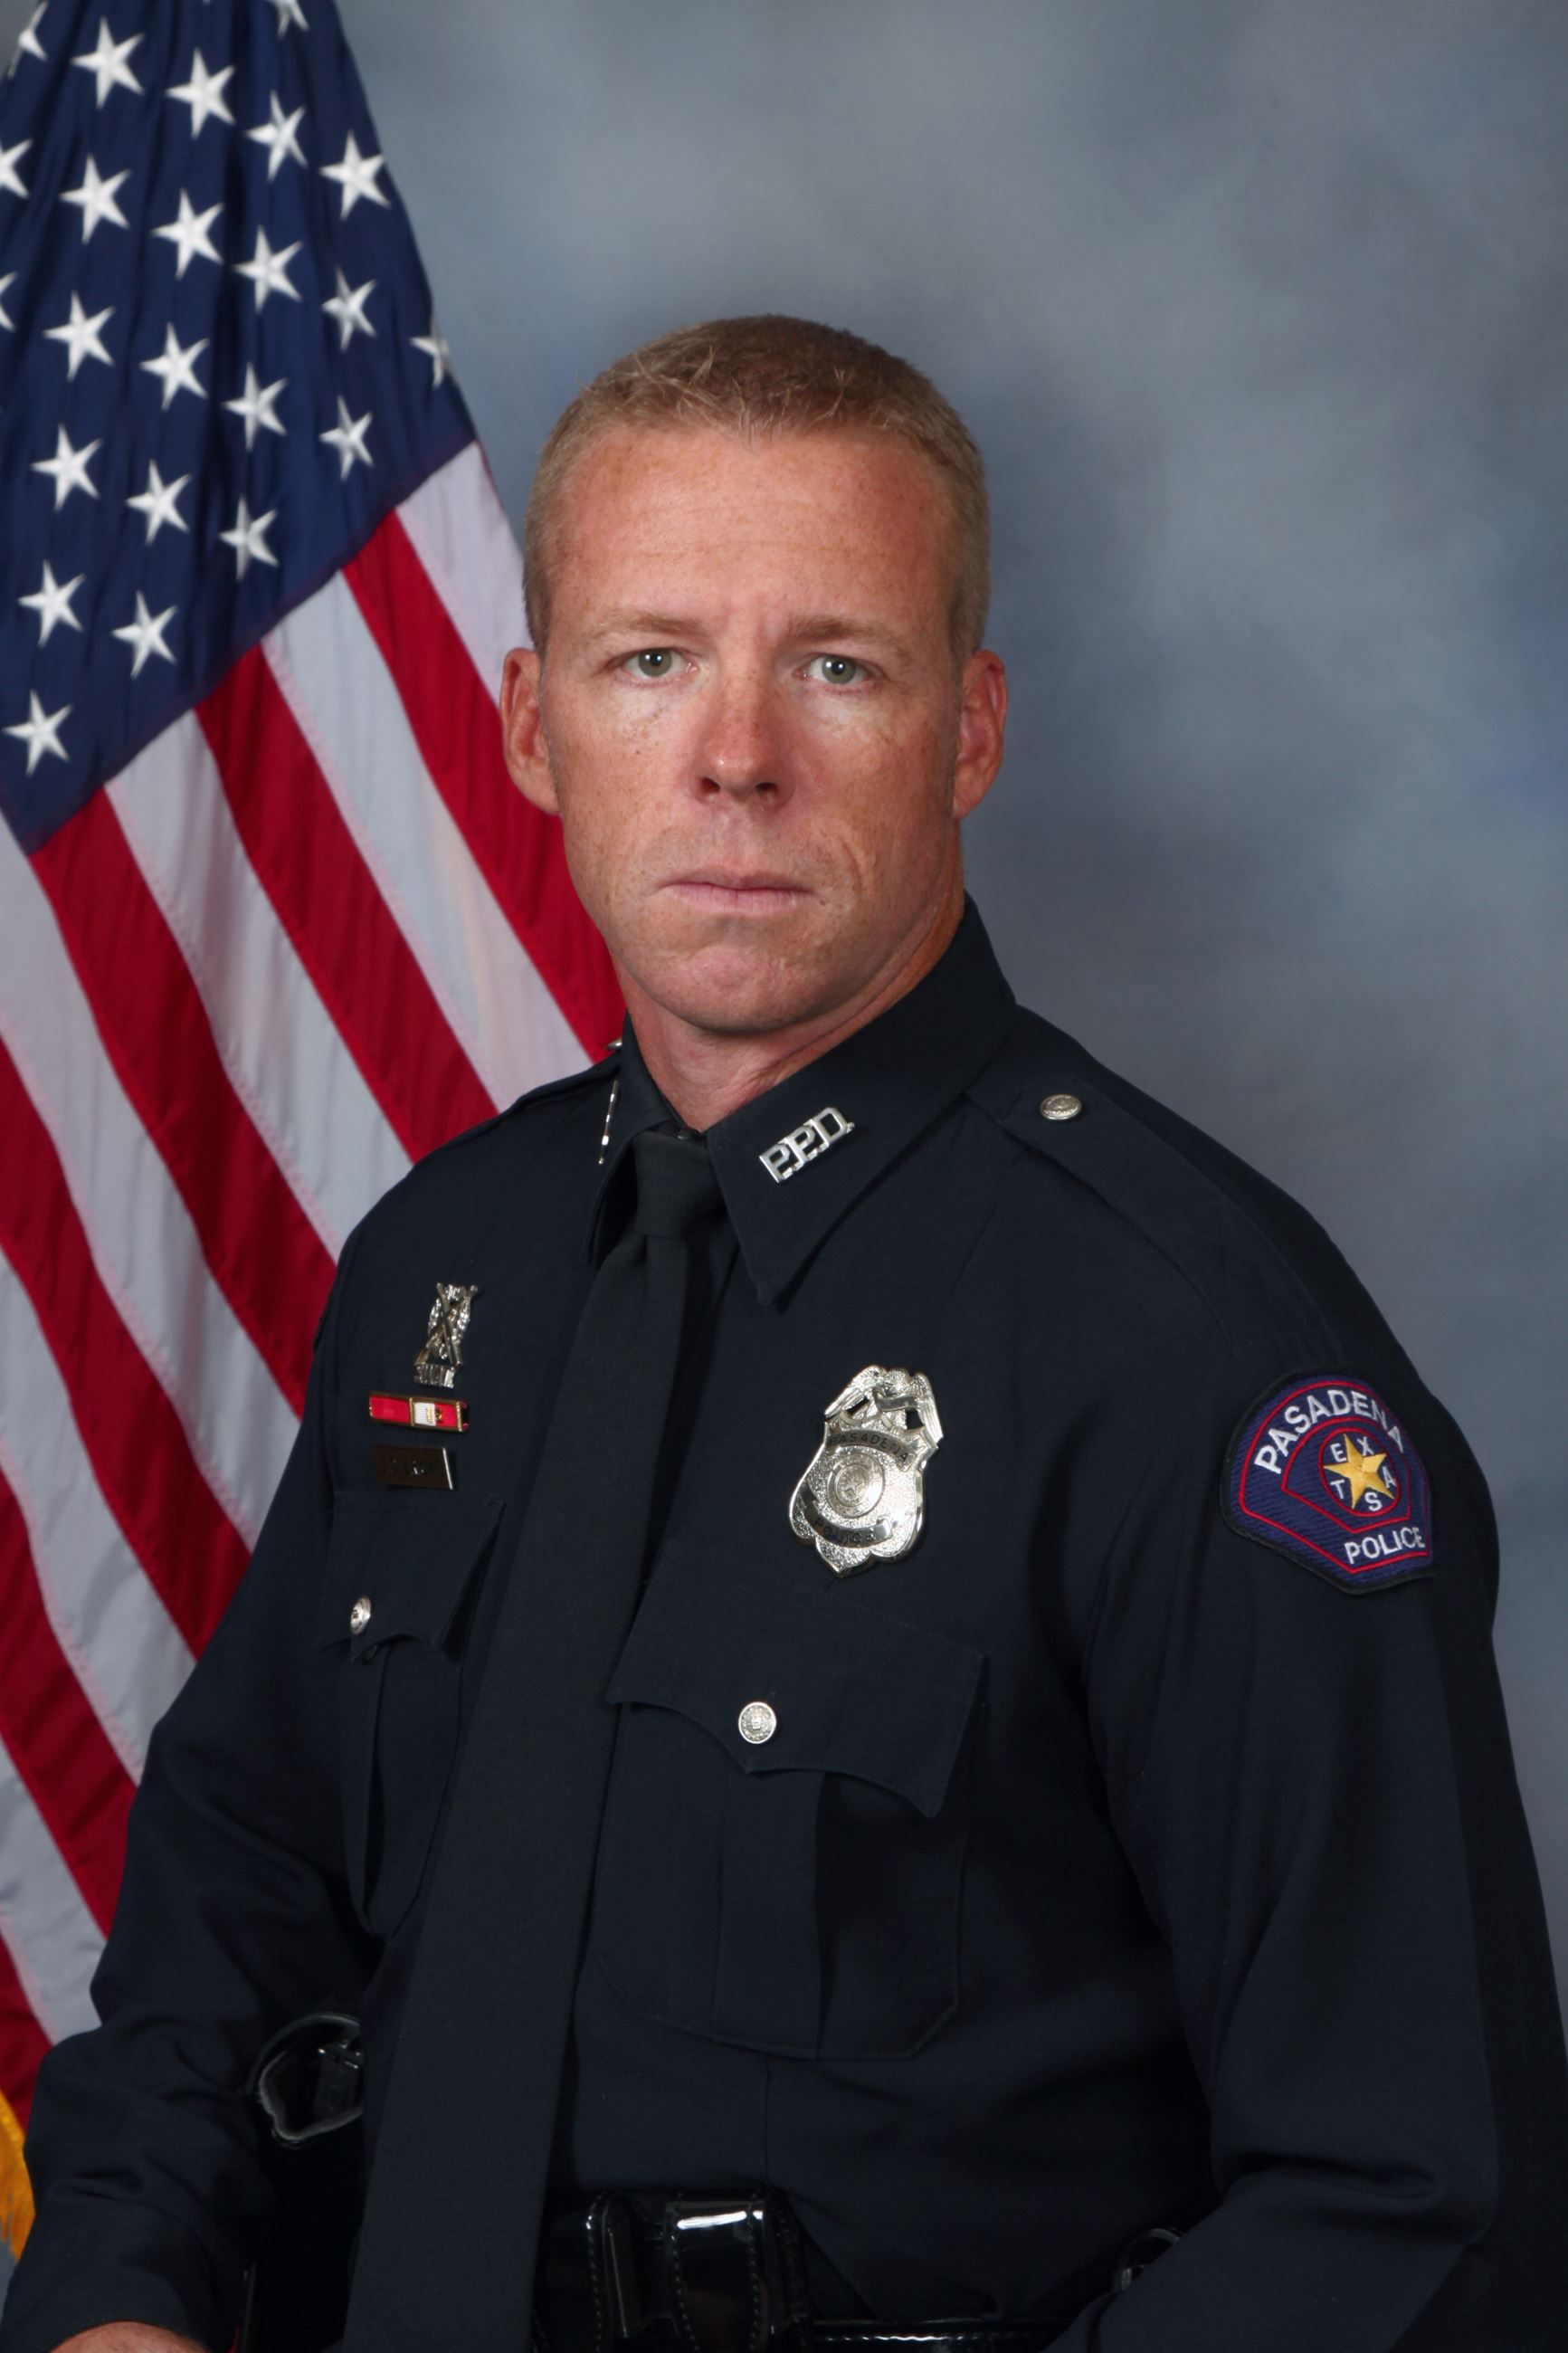 Jason Bright, Officer